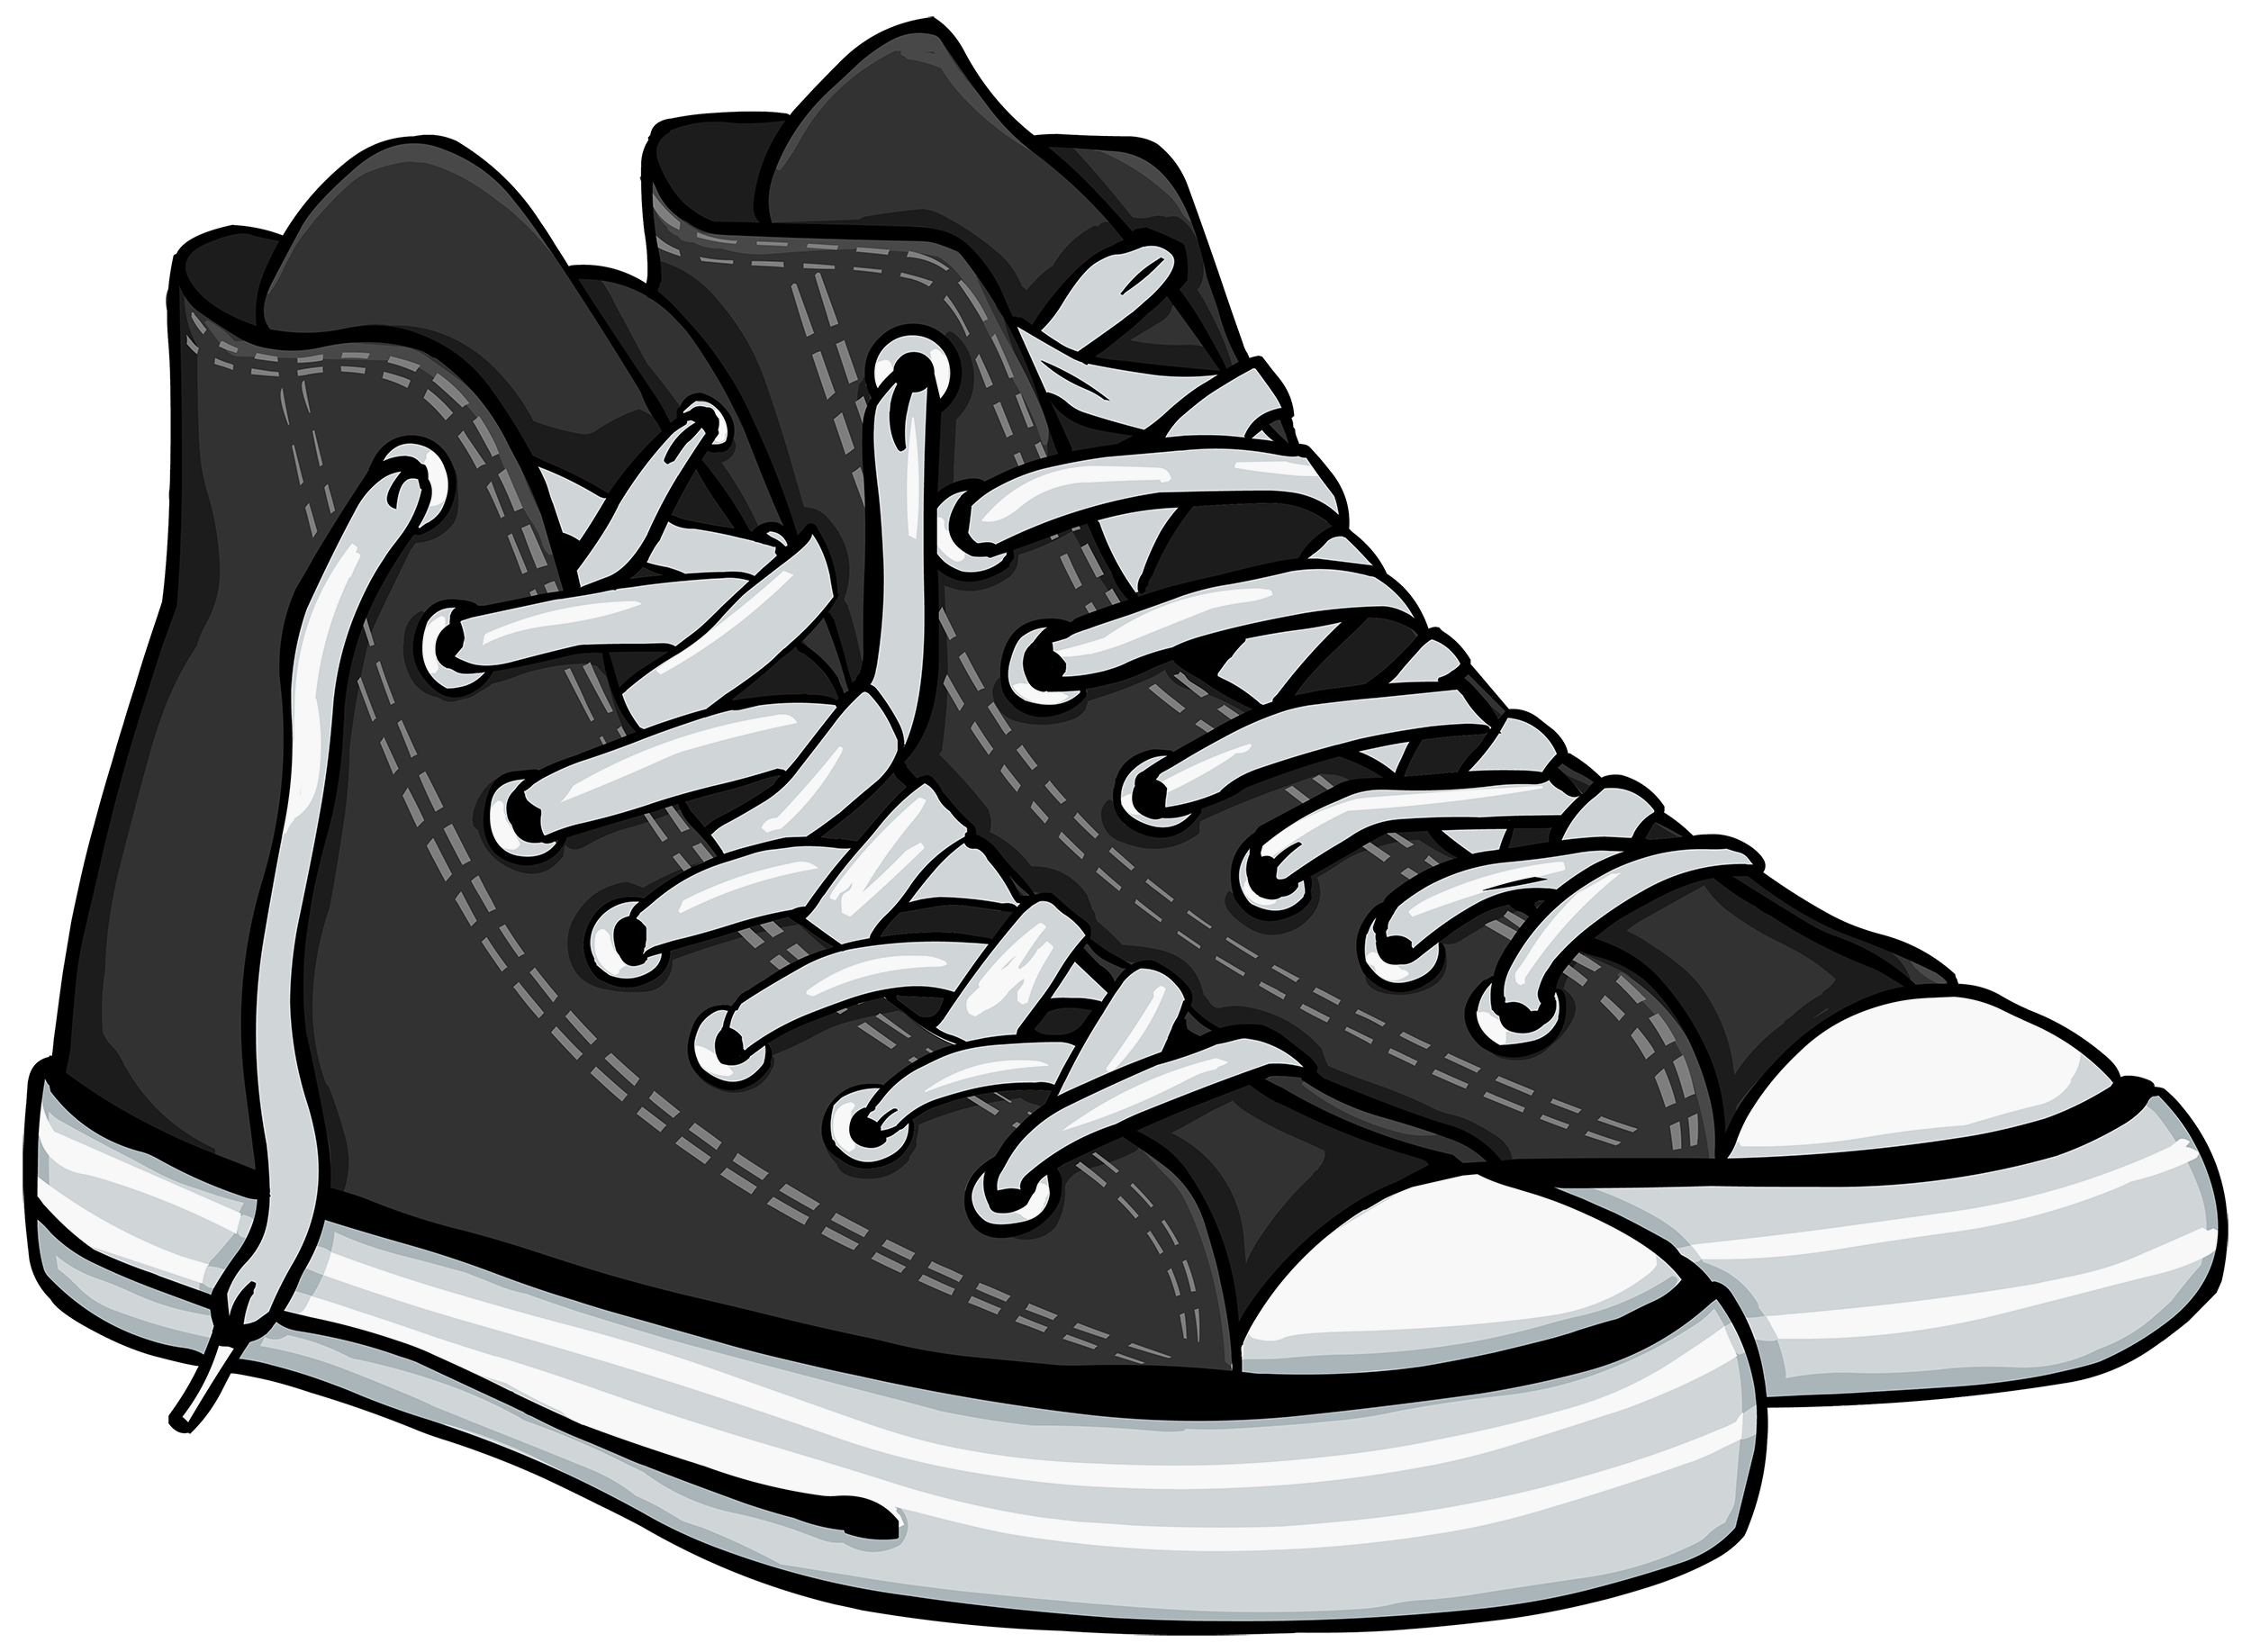 jpg library stock Shoes black and white. Tennis shoe clipart